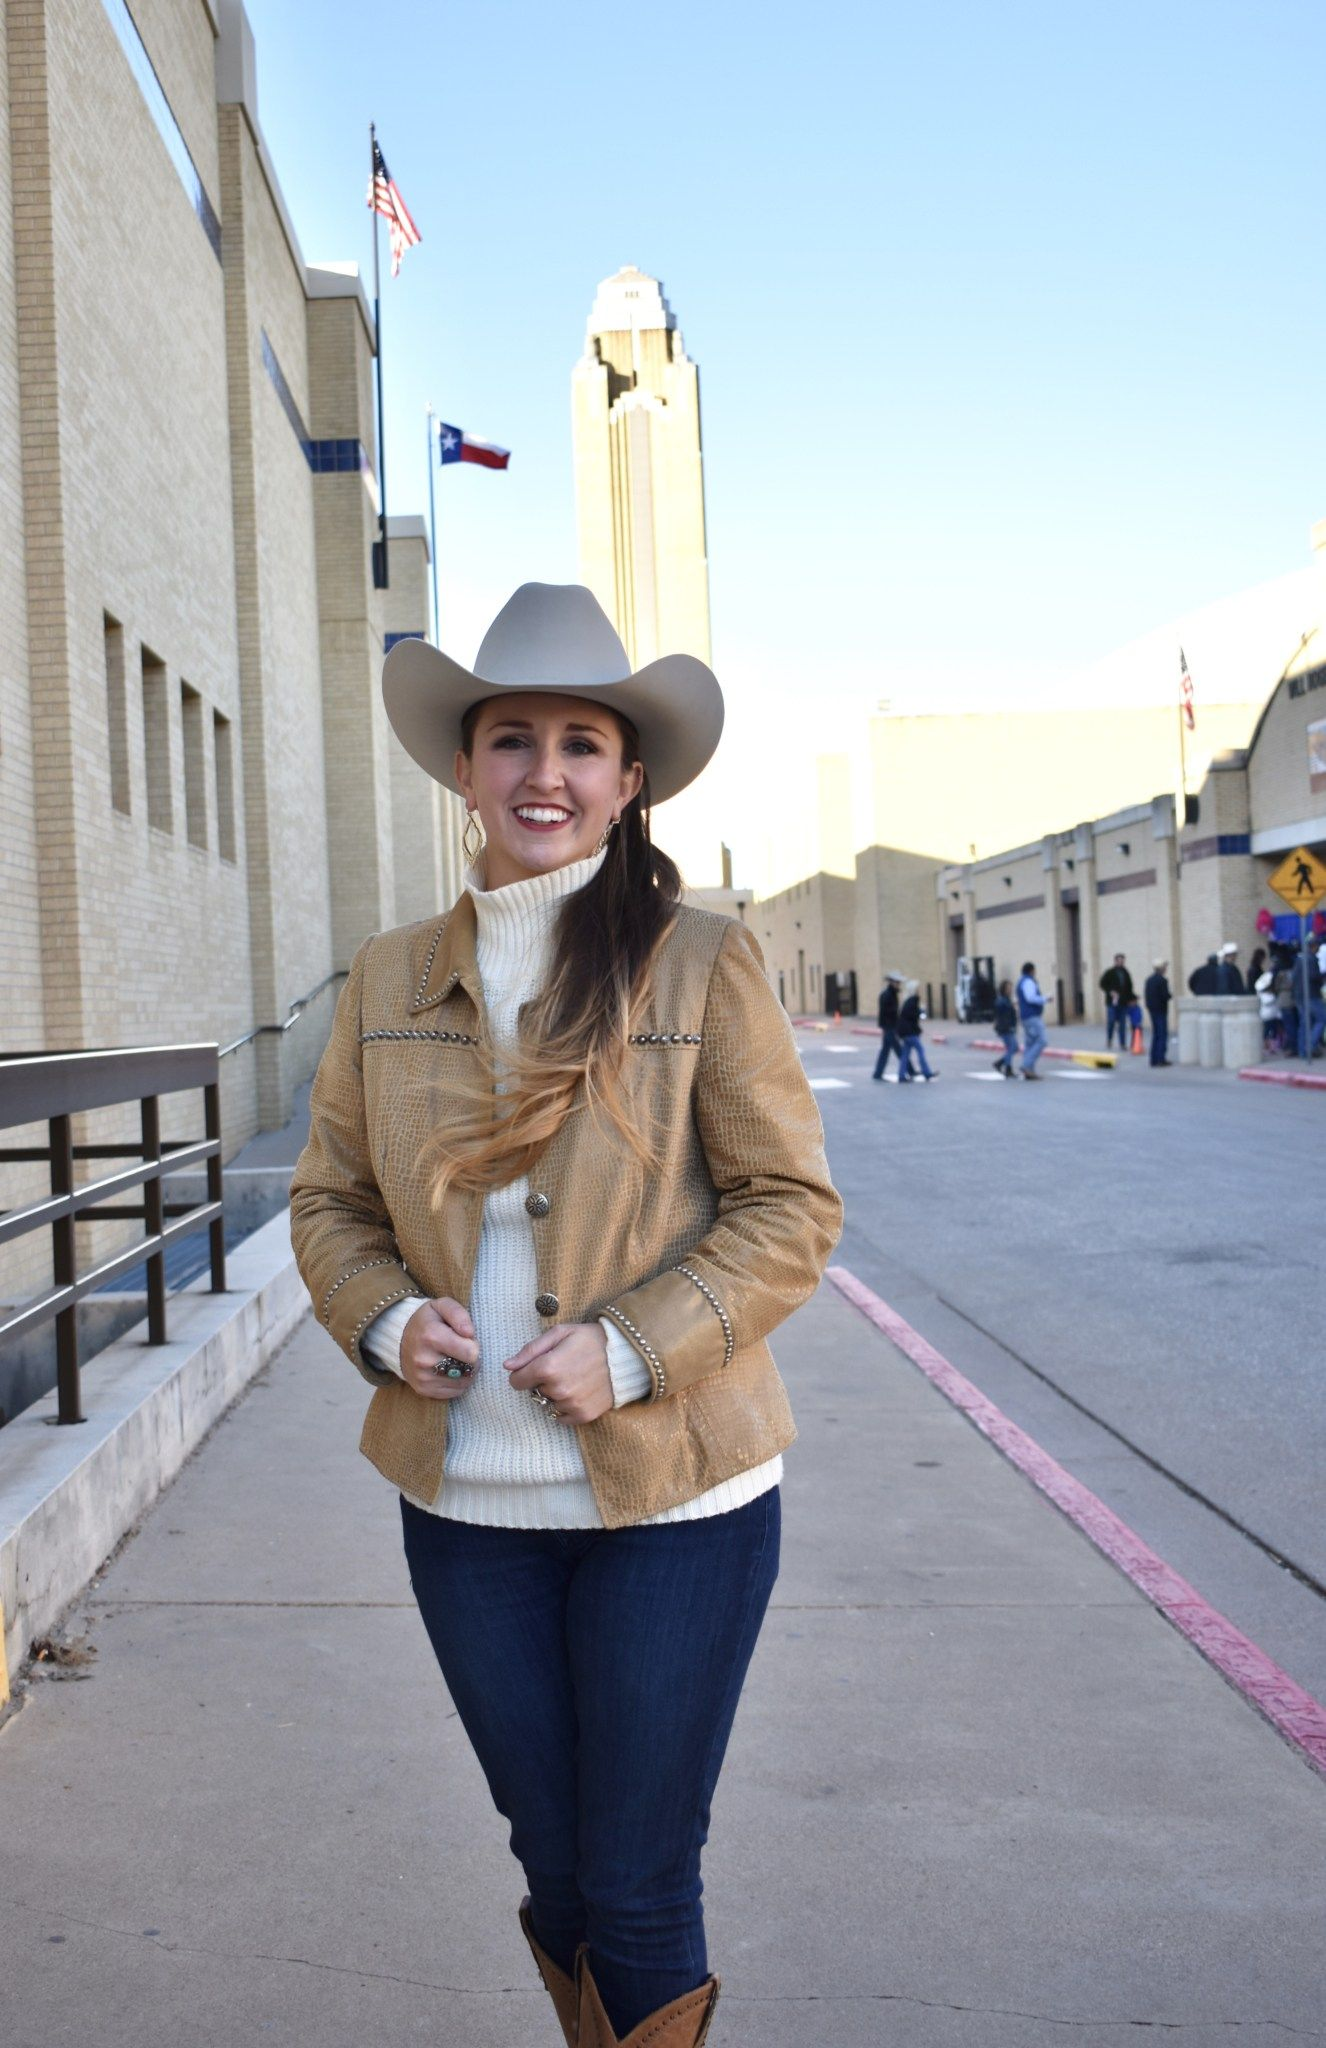 a98c7ae89014 Cute Outfit Ideas for Rodeo Season – Cait and Co. Blog